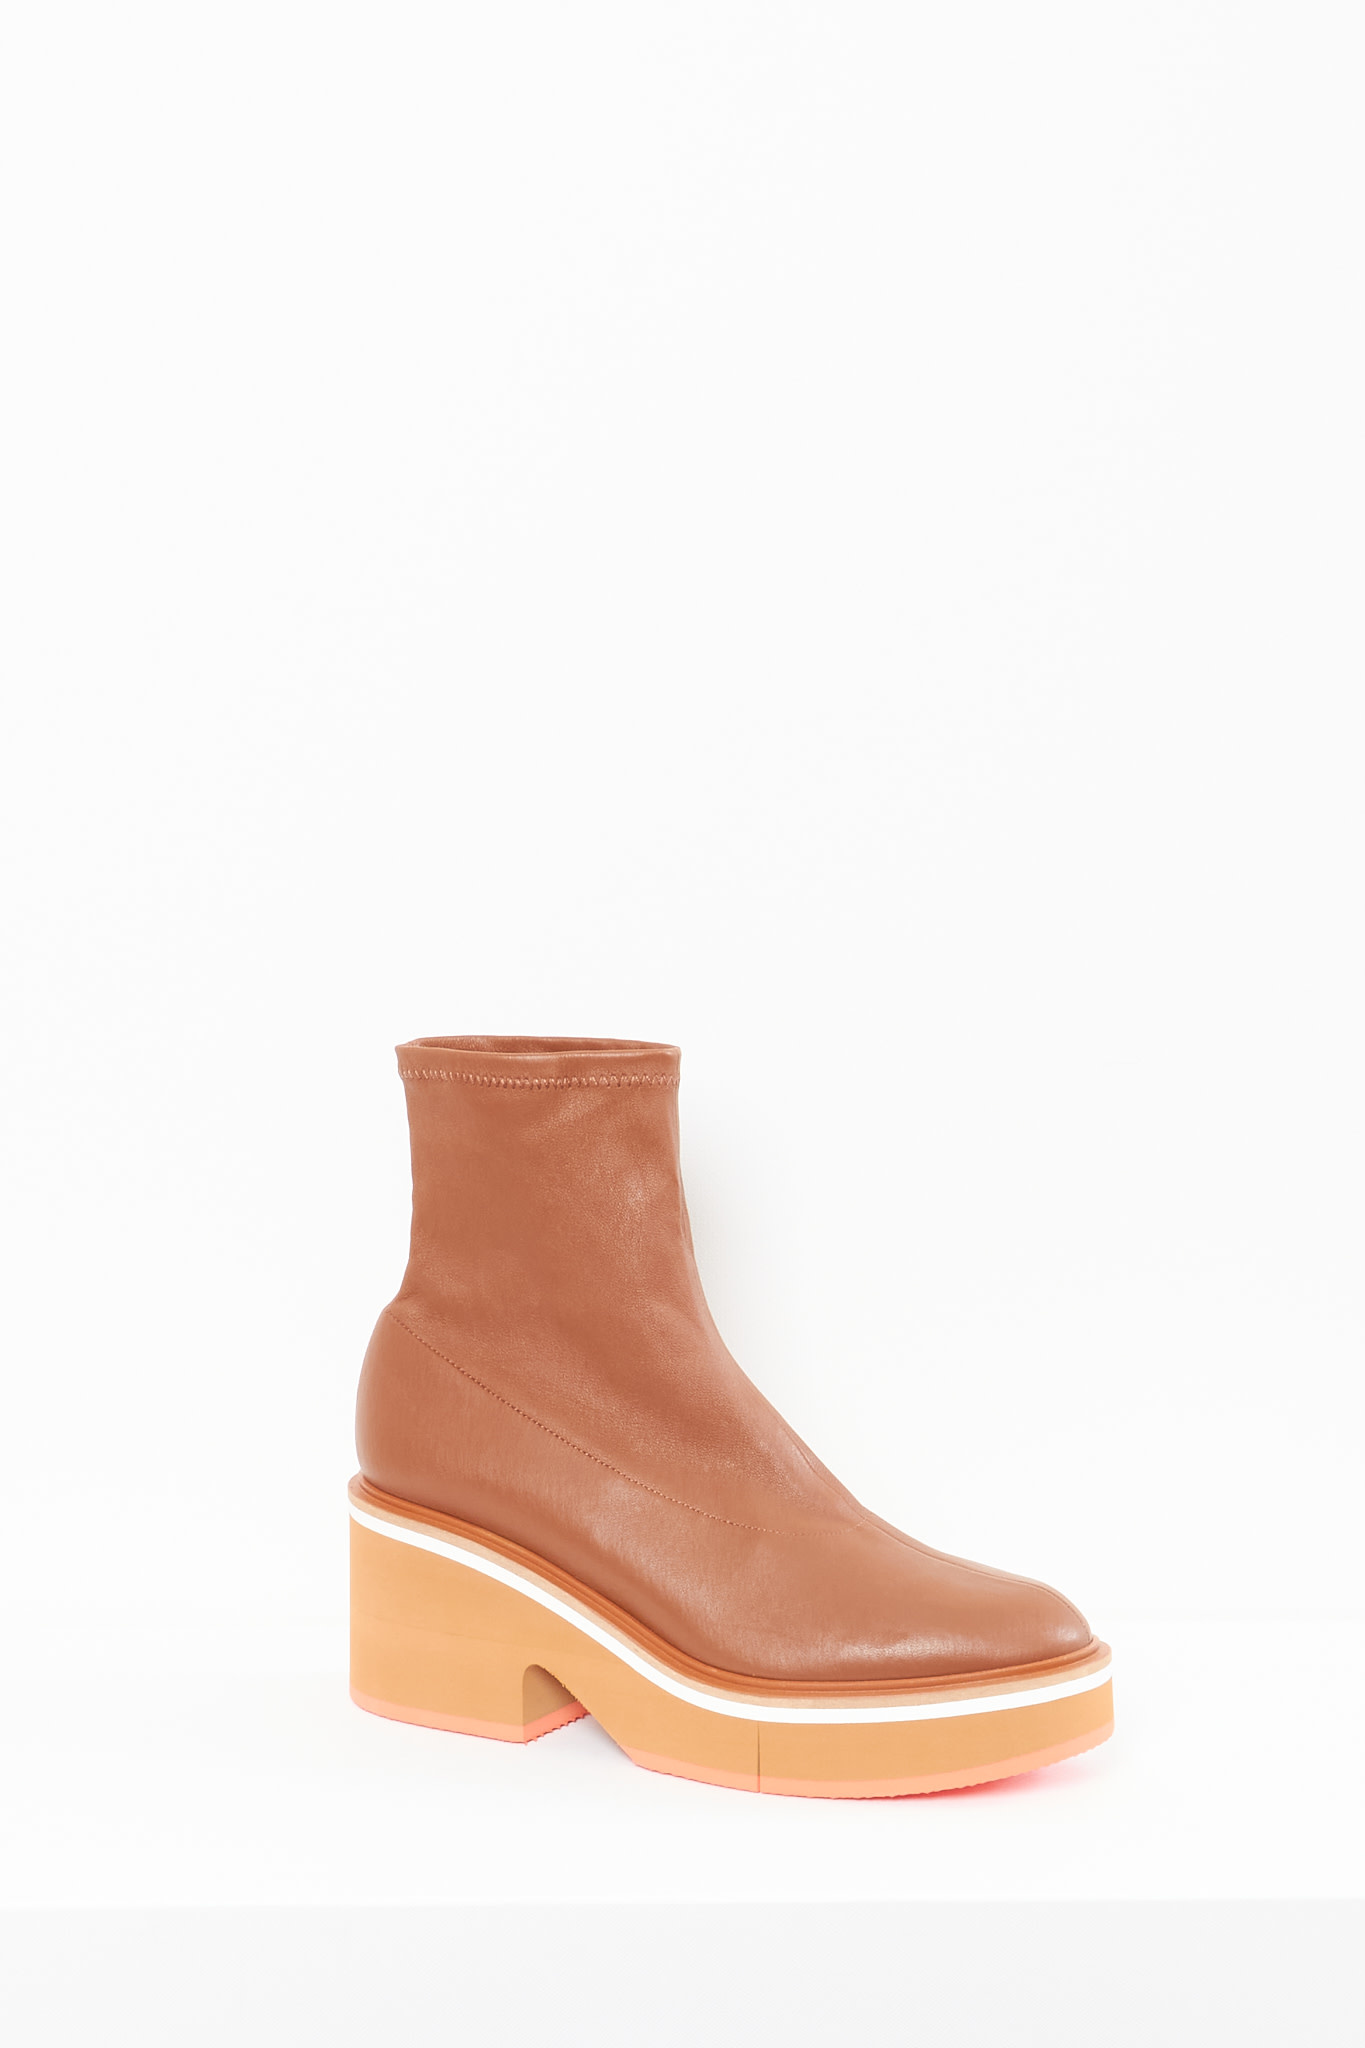 Clergerie Albane stretch leather boots